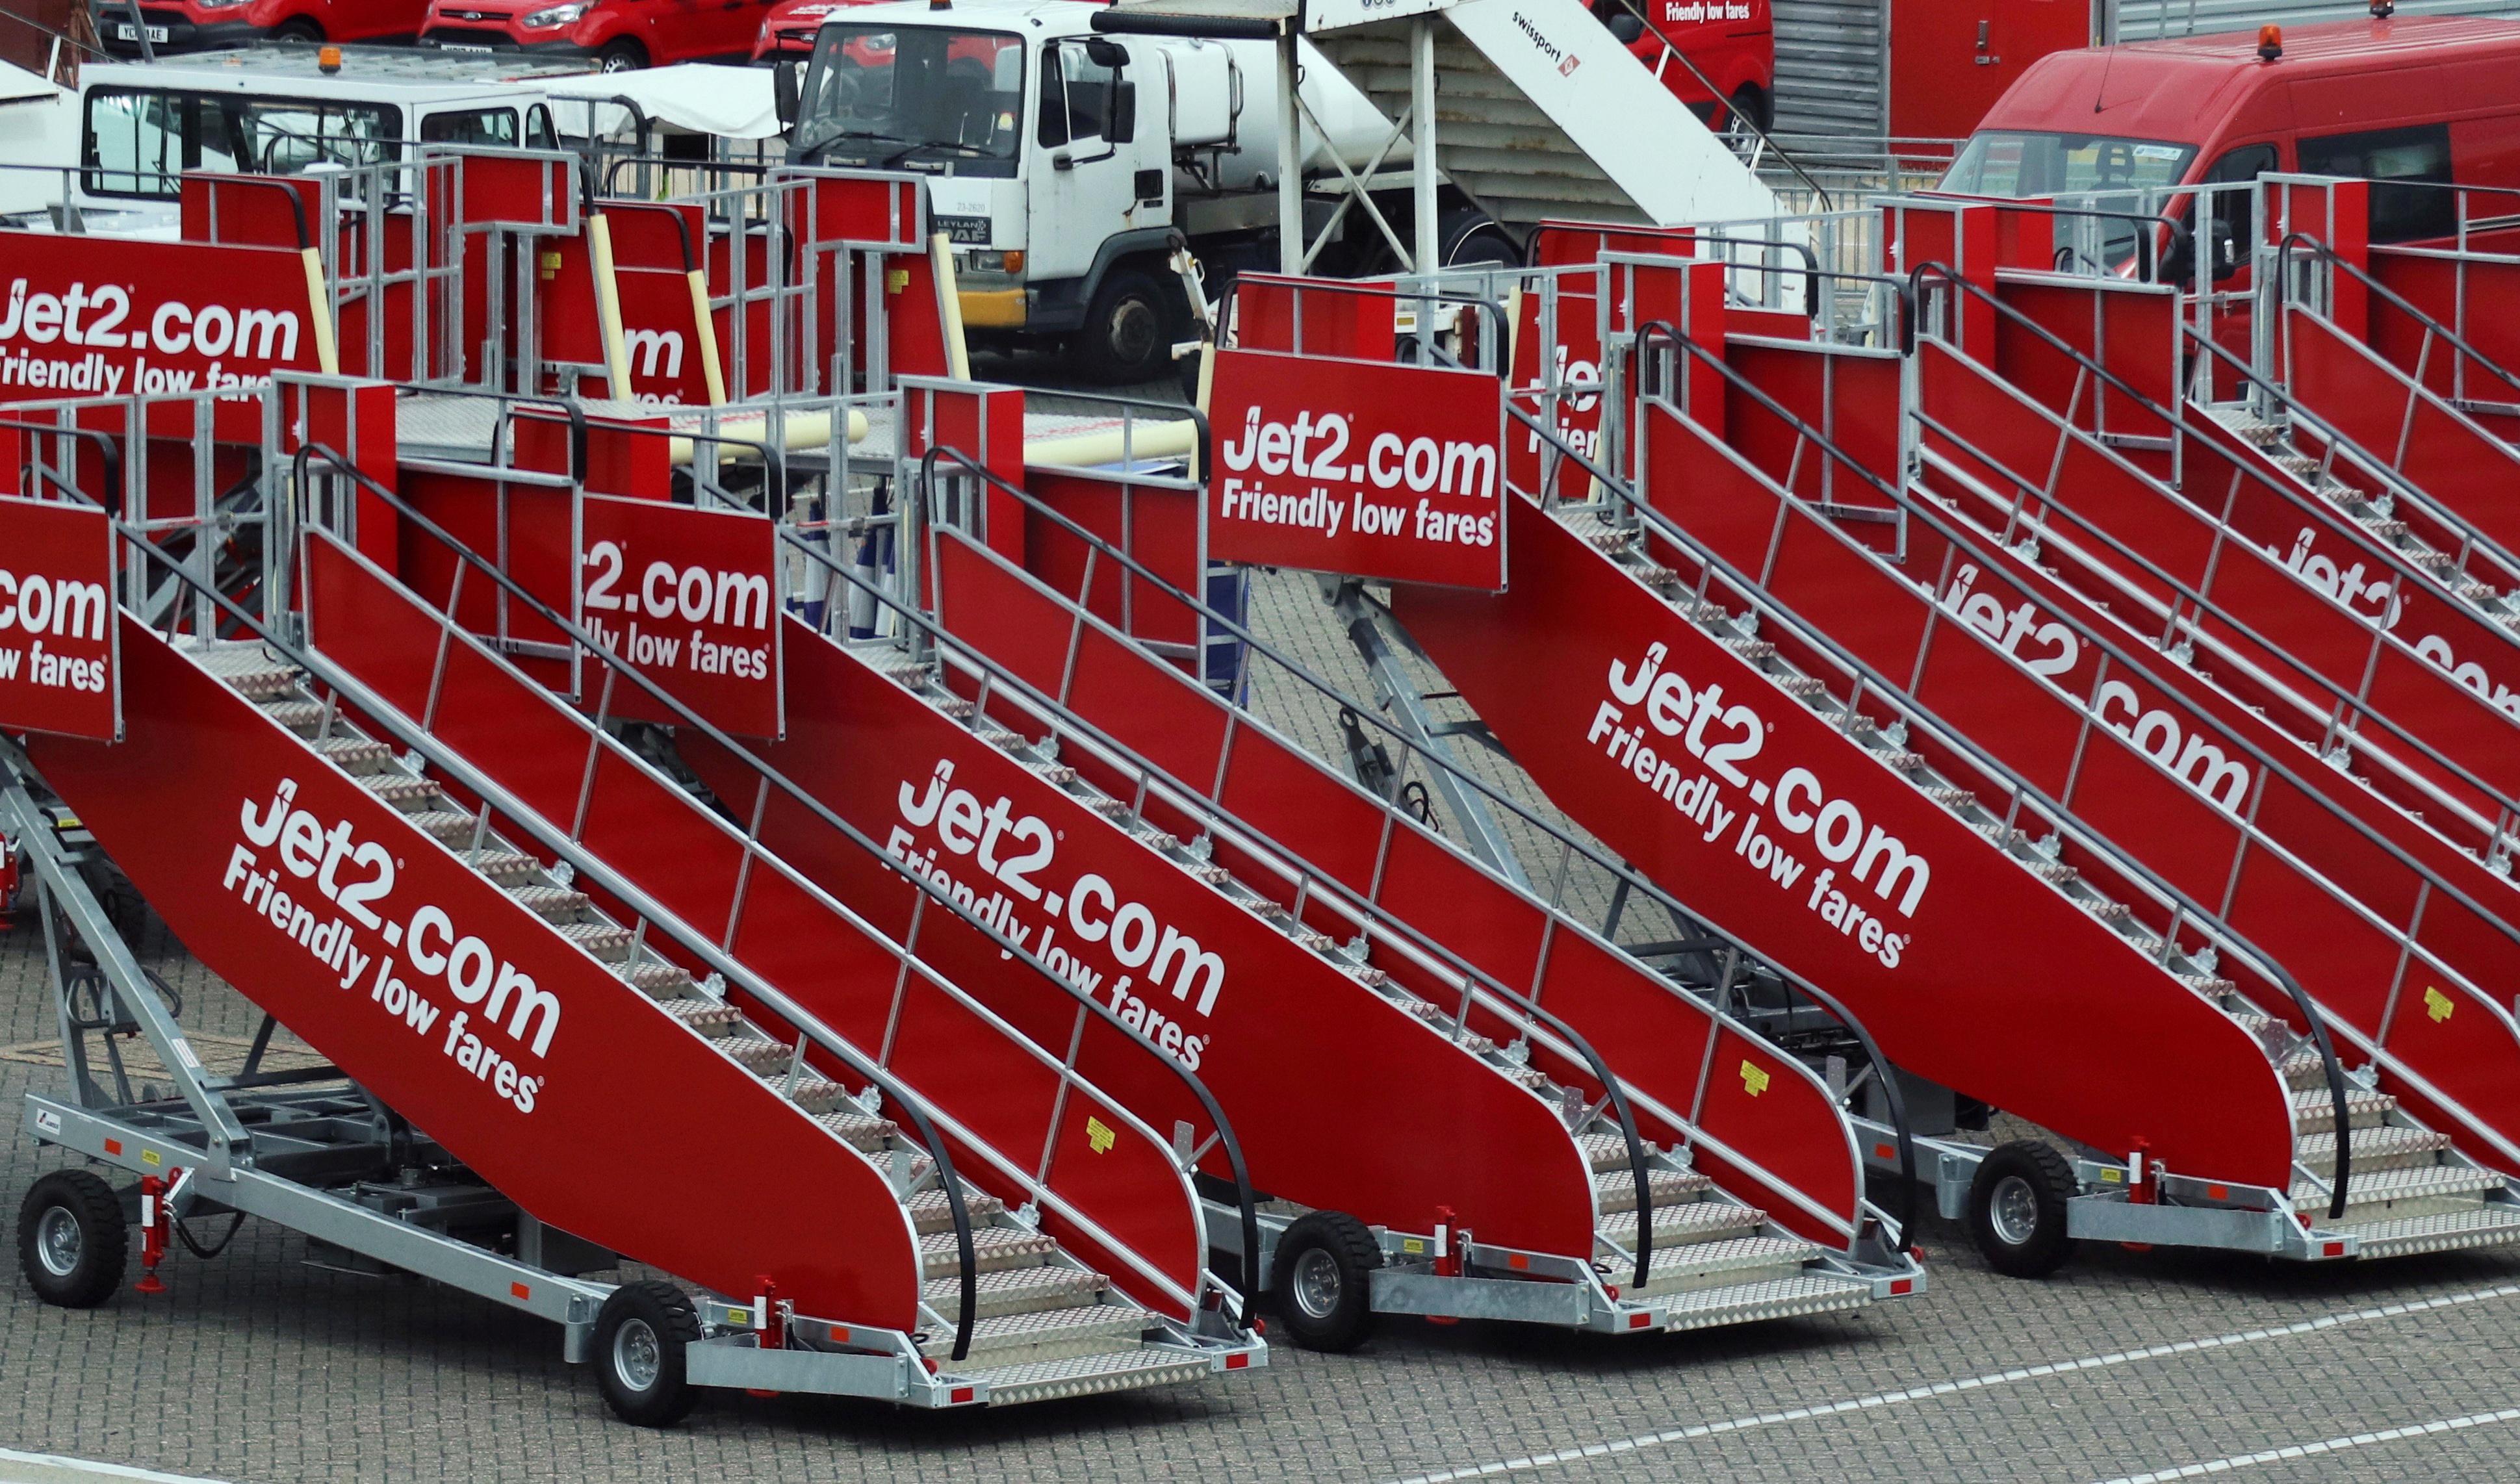 Jet2.com aircraft boarding stairs are stored at Stansted airport in Stansted, Britain June 30, 2017. Picture taken through glass. REUTERS/Russell Boyce/File Photo